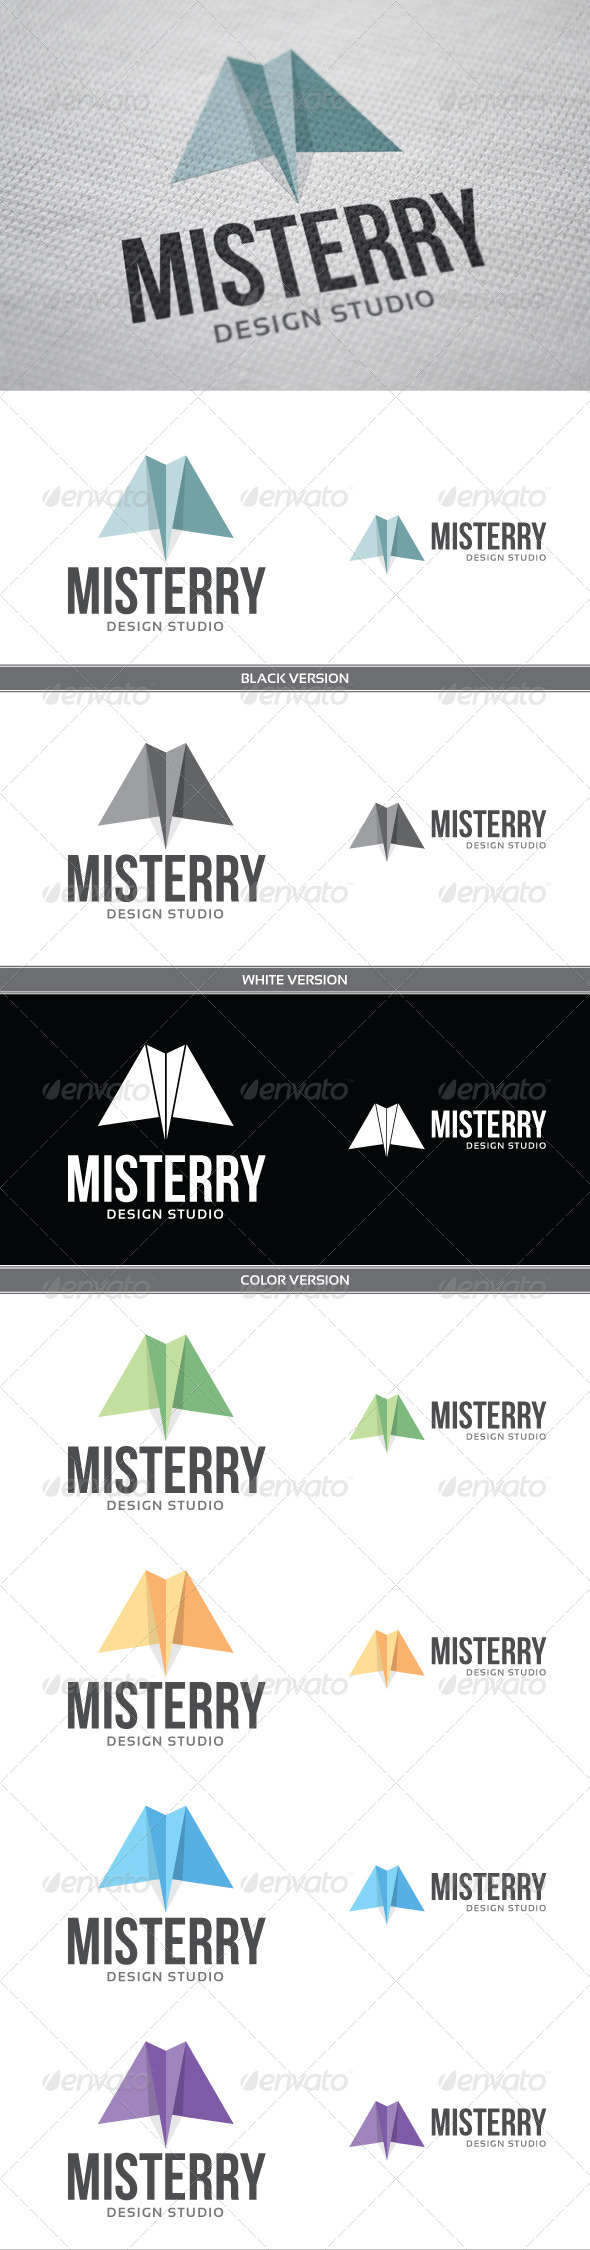 GraphicRiver Misterry 4125556